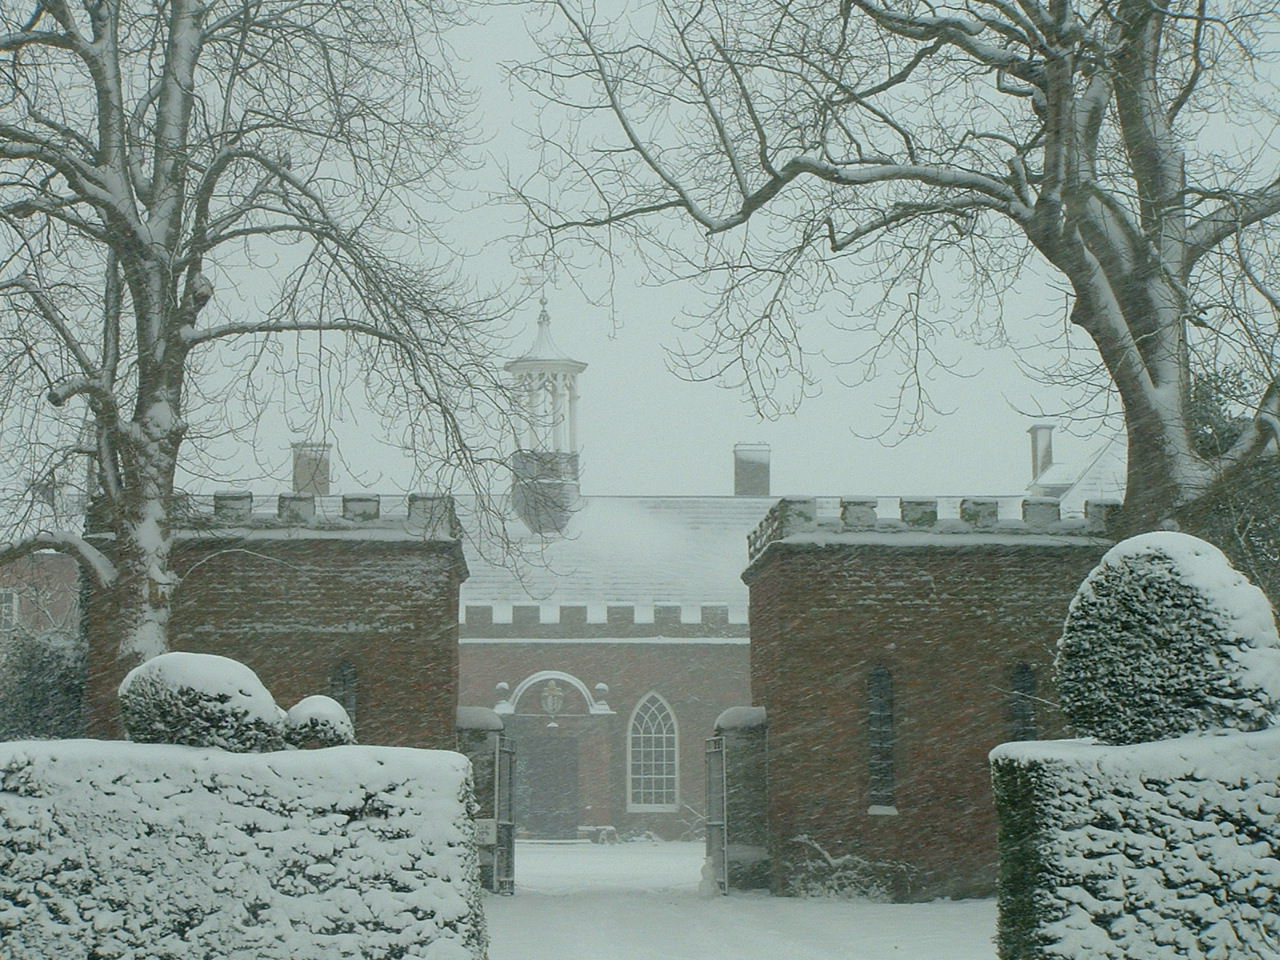 Hartlebury museum in the snow